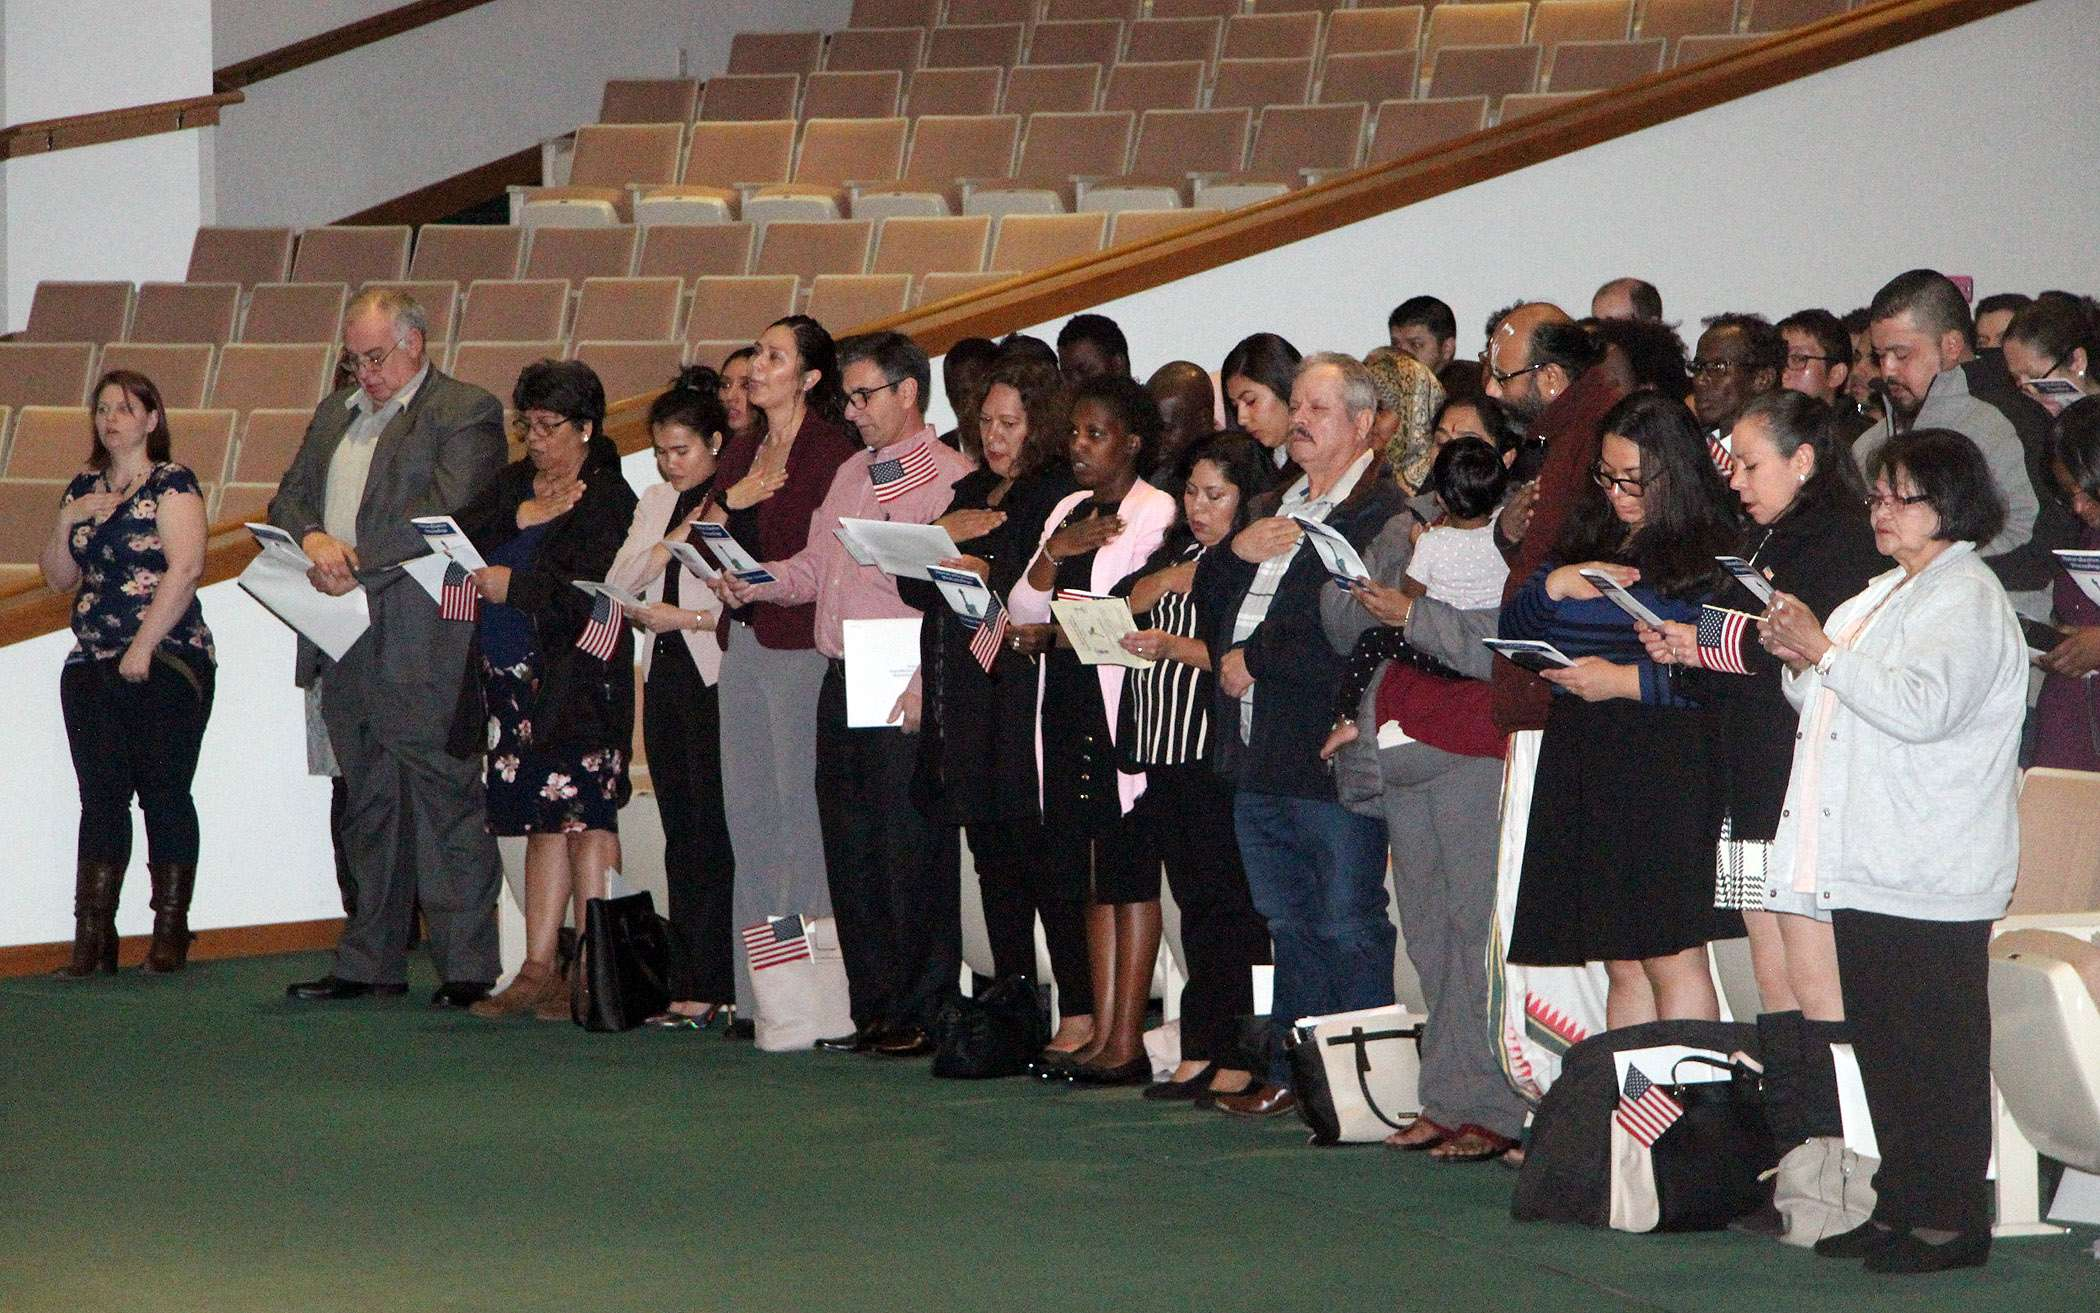 <b>Some of the new U.S. citizens.</b>